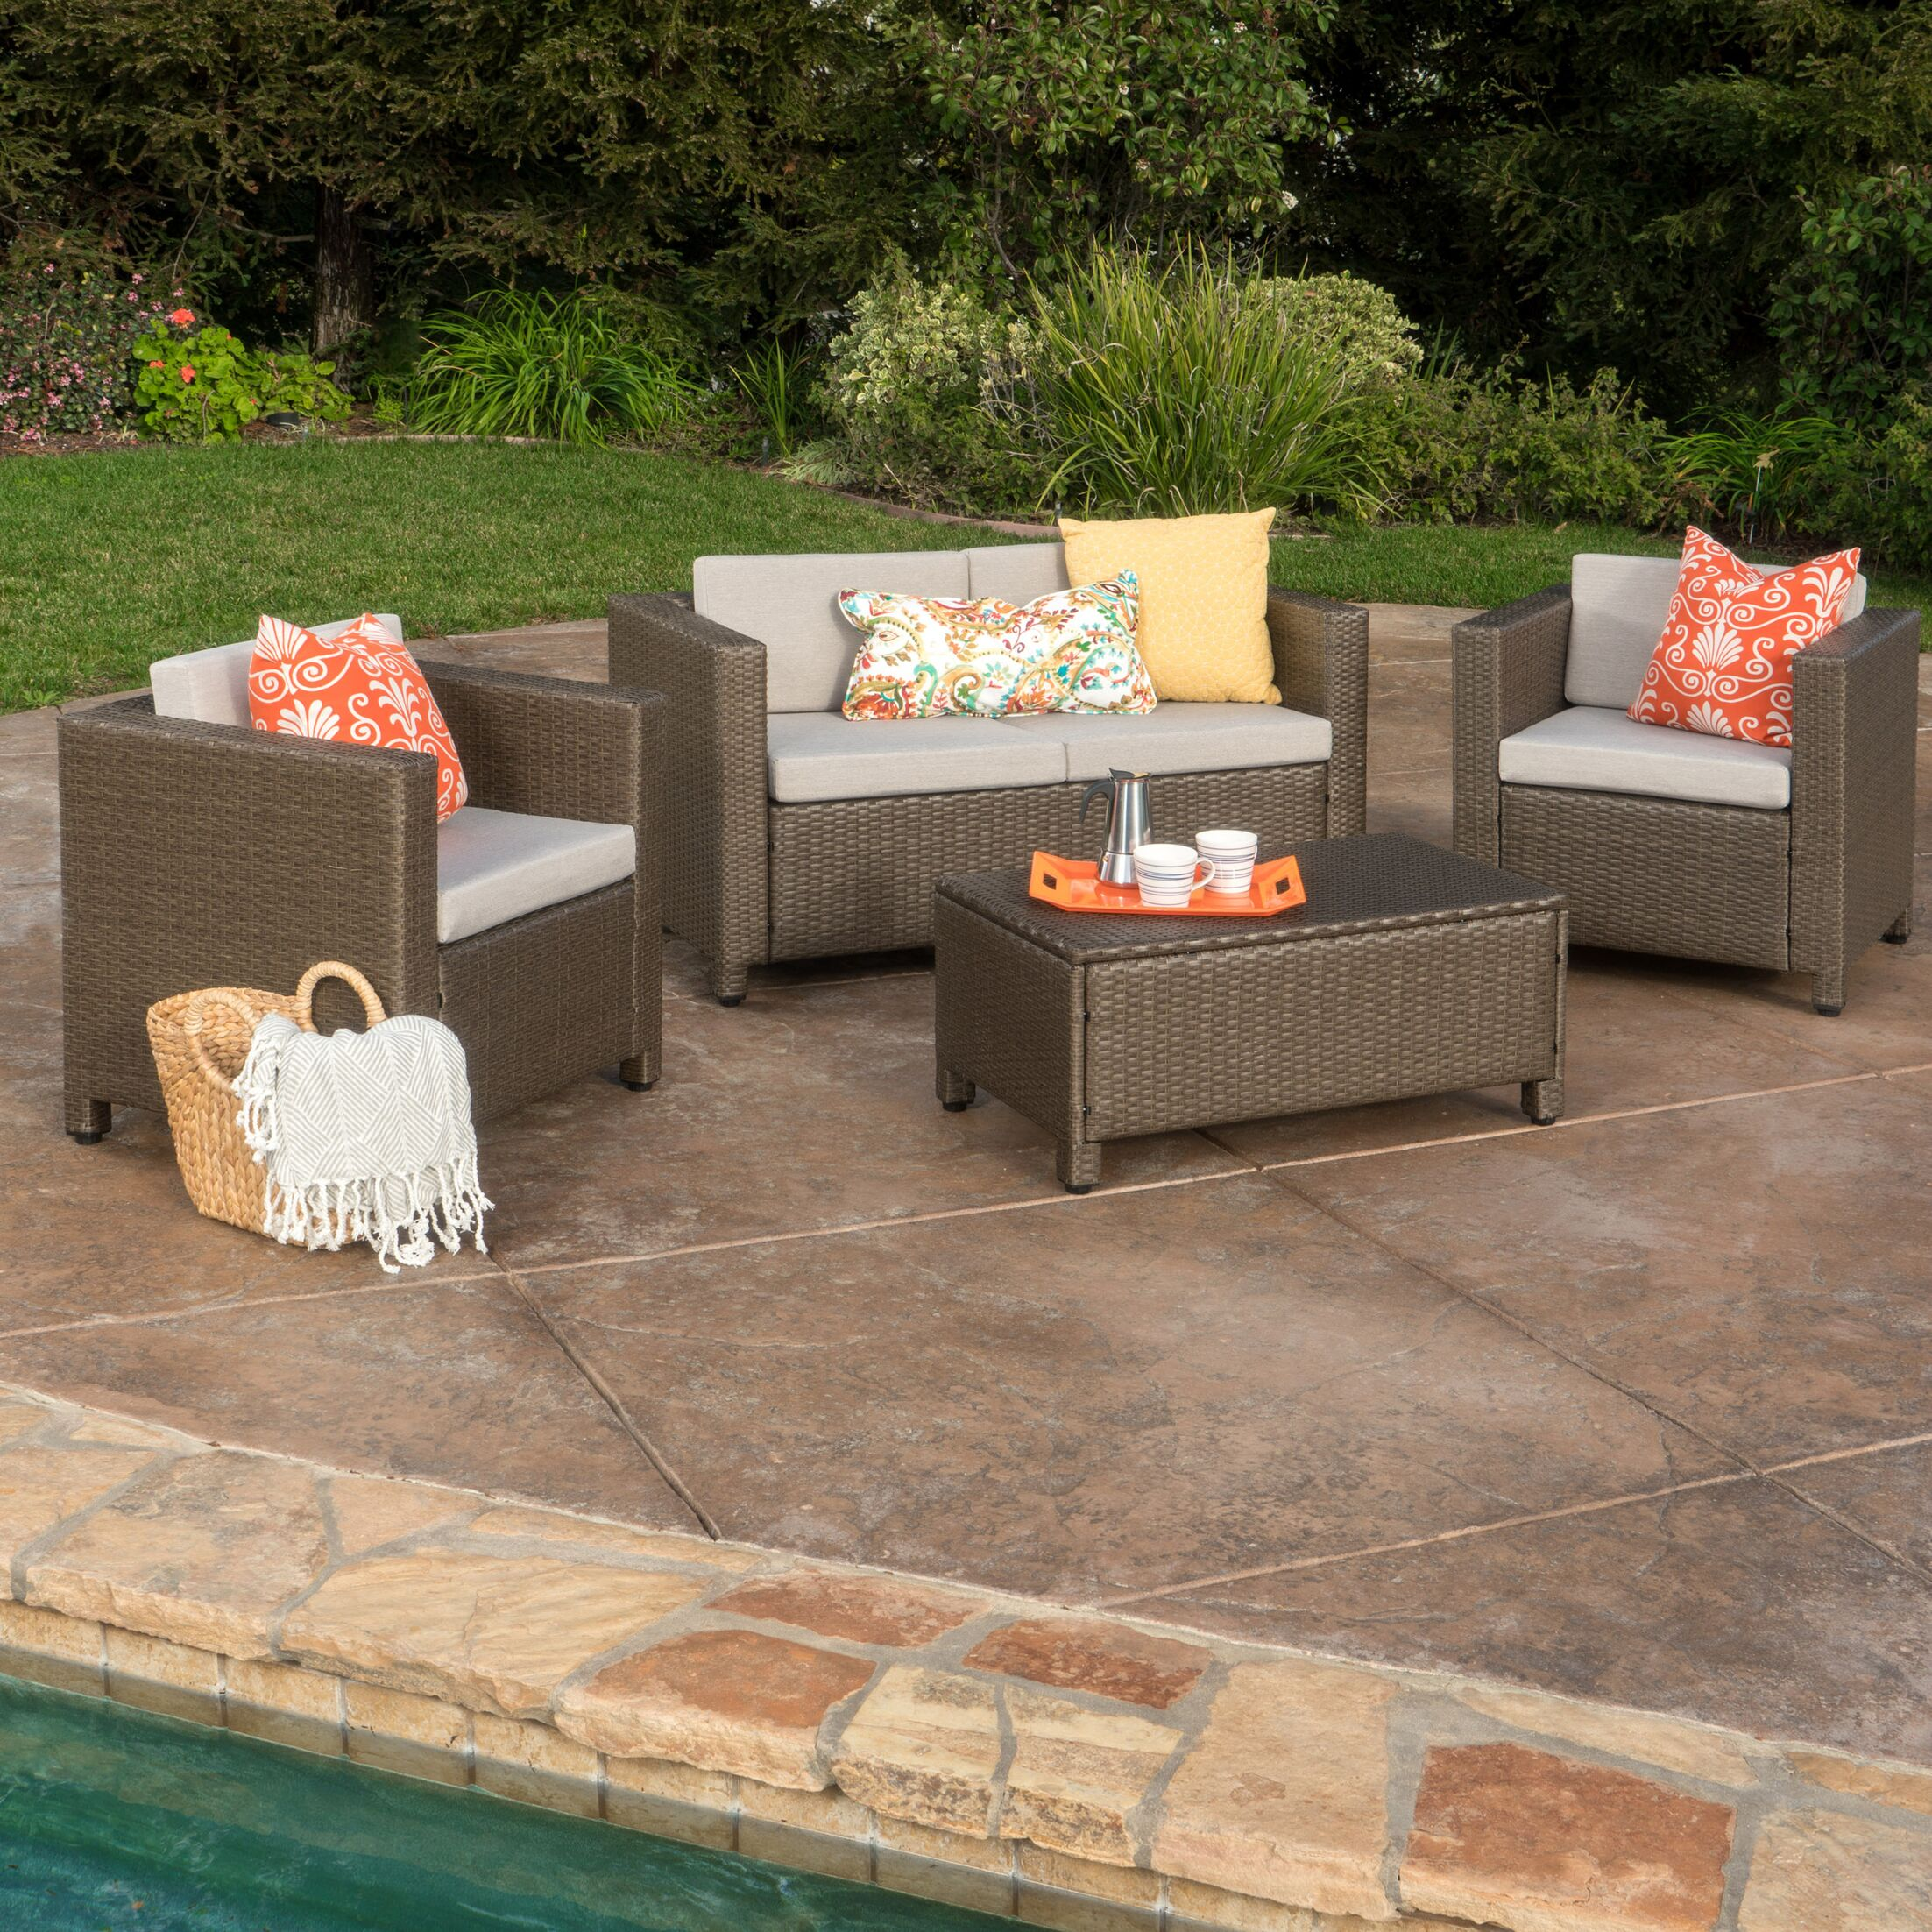 Kappa 4 Piece Rattan Sofa Set with Cushions Color: Light Brown